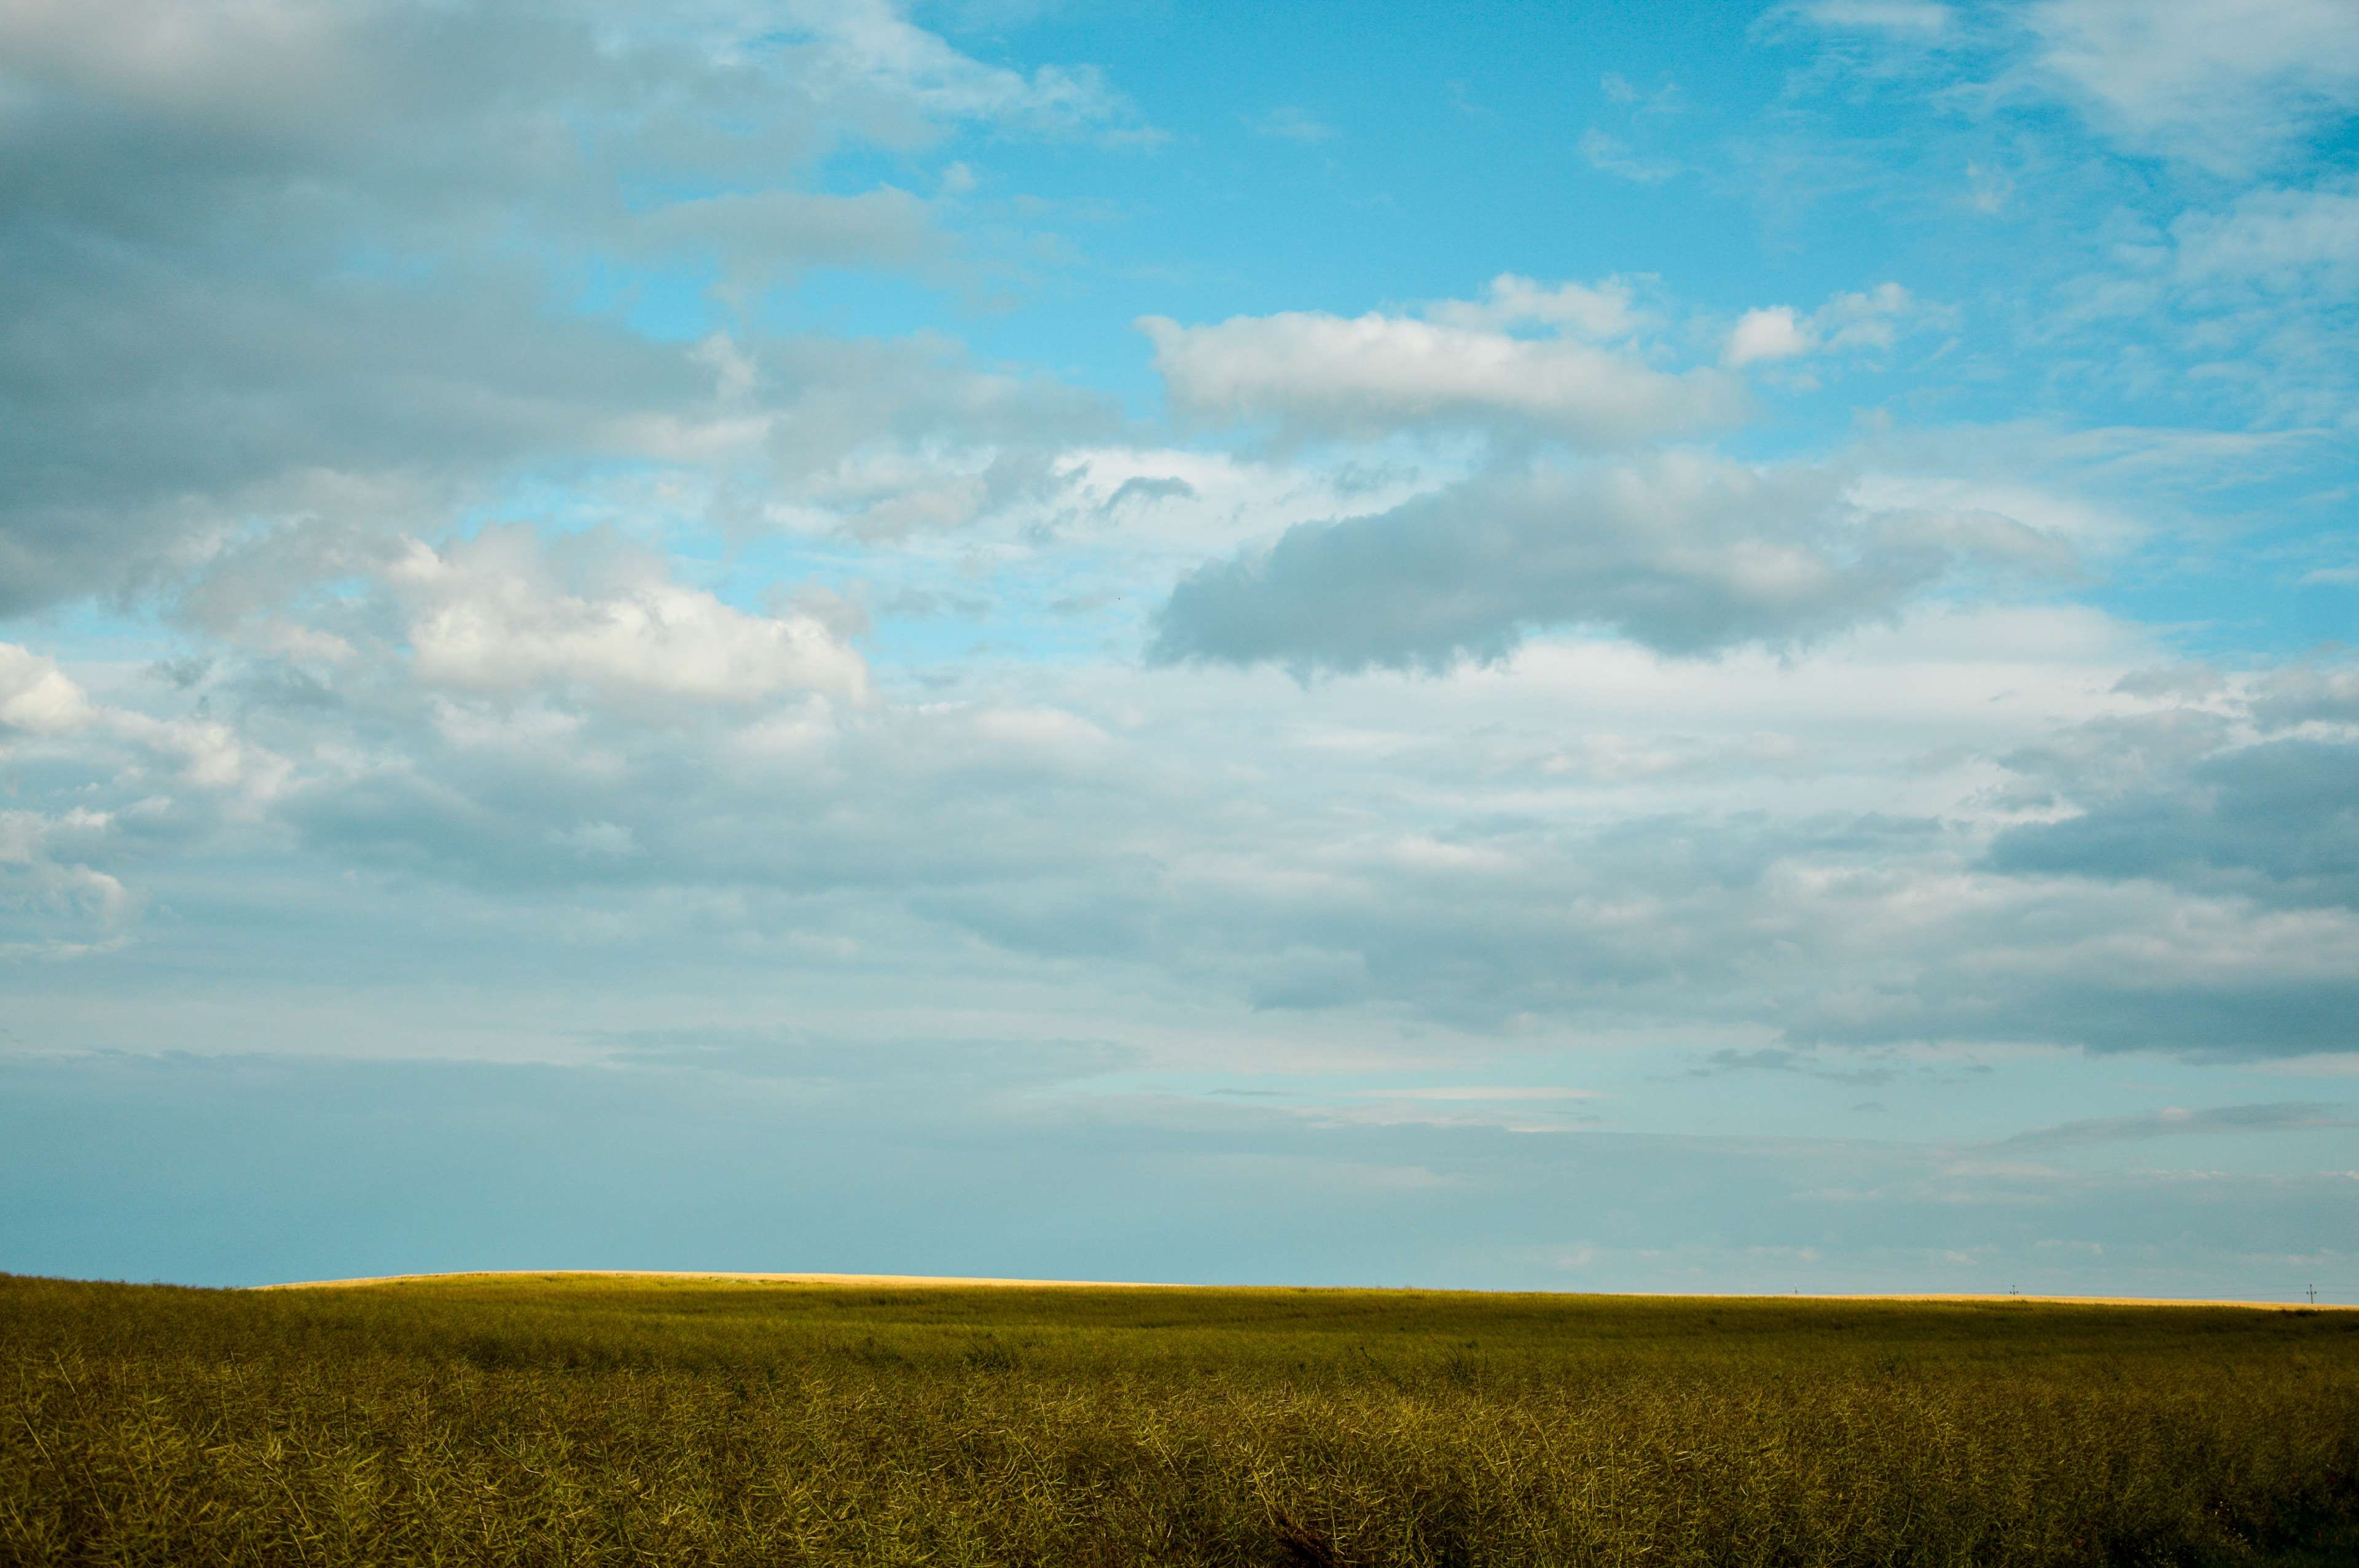 Agriculture Clouds Country Countryside Cropland Daylight Environment Fall Farm Farmland Field Grass Horizon Landsca Landscape Countryside Outdoor Nature grass field sky clouds horizon